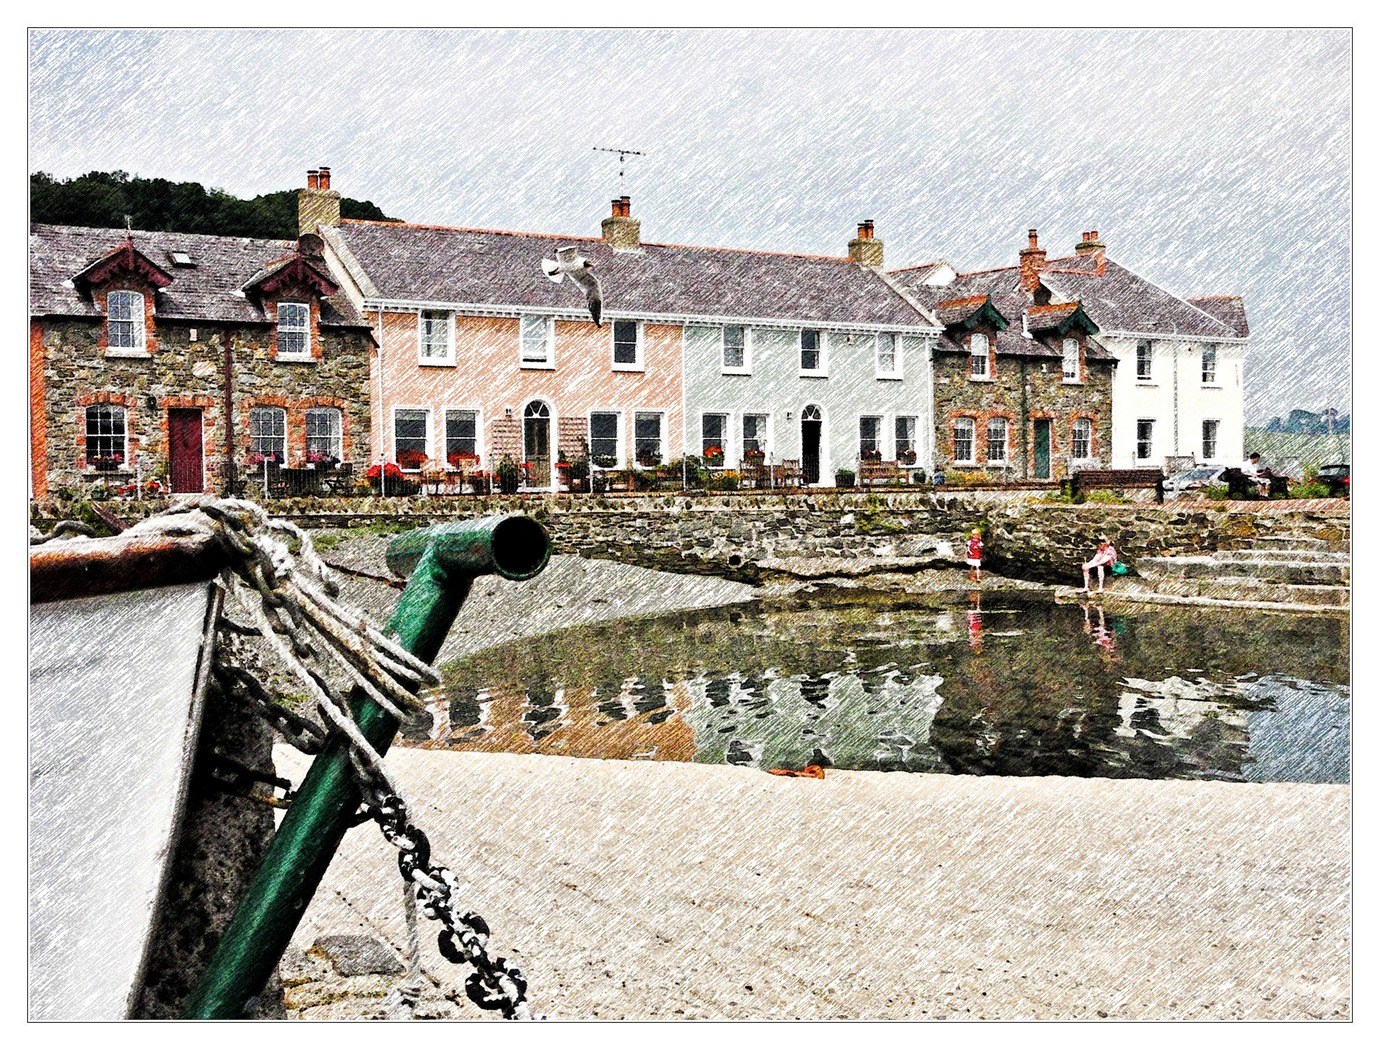 'Strangford Quay' by Peter Read